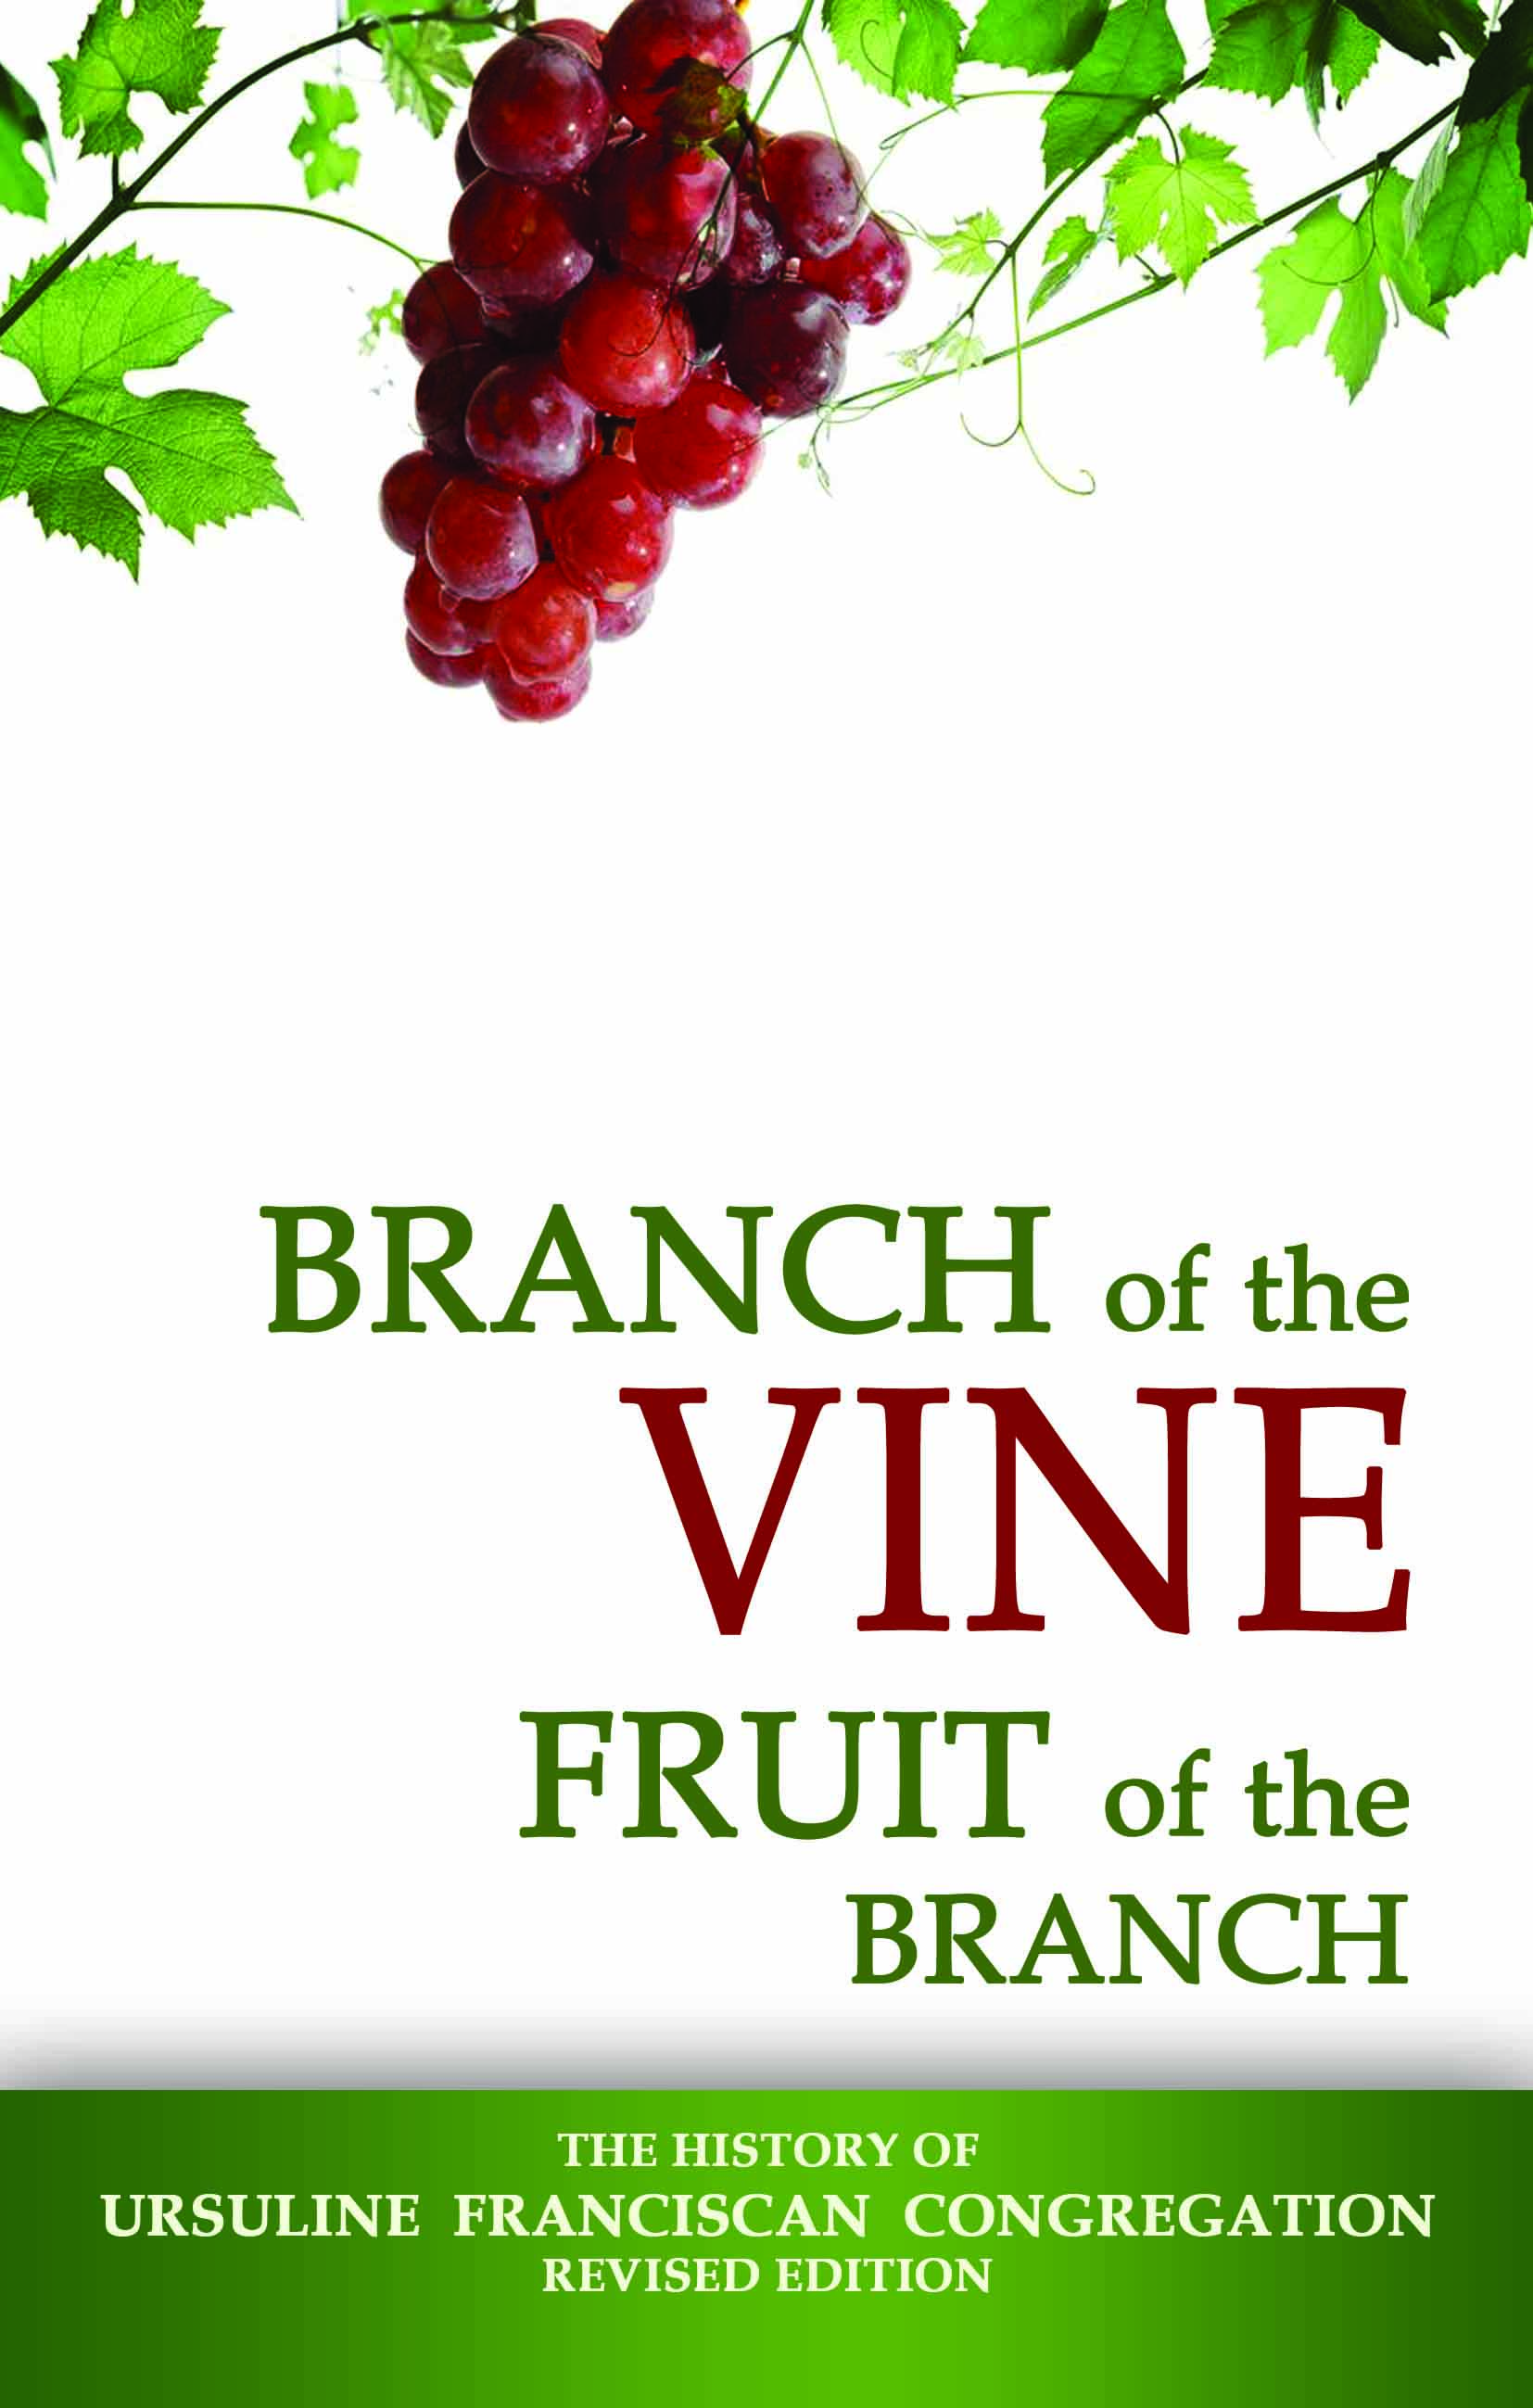 Branch of the Vine Fruit of the Branch